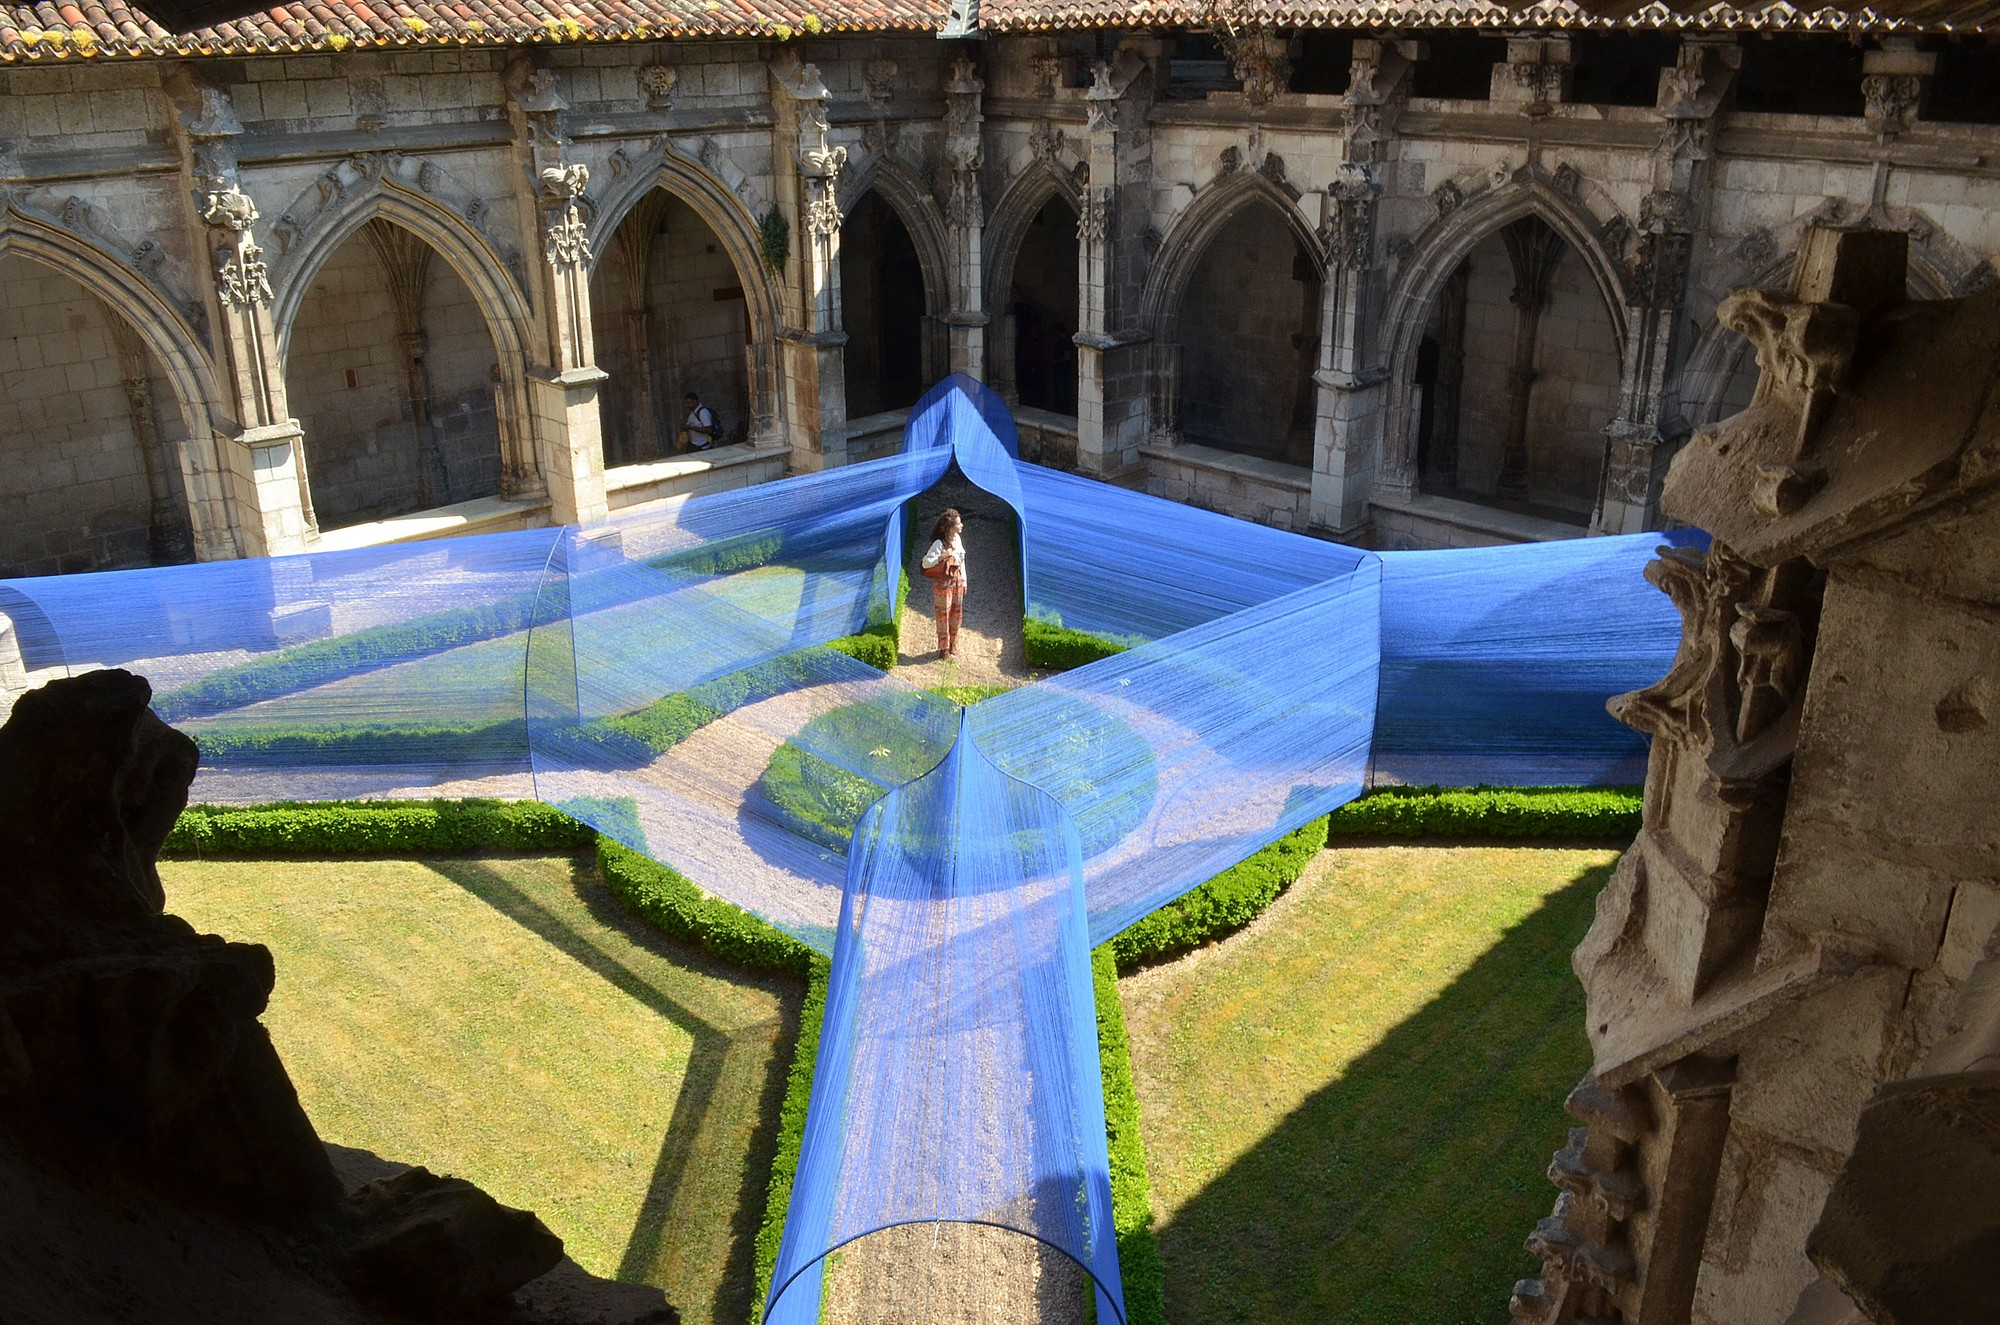 Atelier YokYok Designs an Enchanting String Installation in Cahors, Installation in Courtyard. Image Courtesy of Atelier YokYok + Ulysse Lacoste